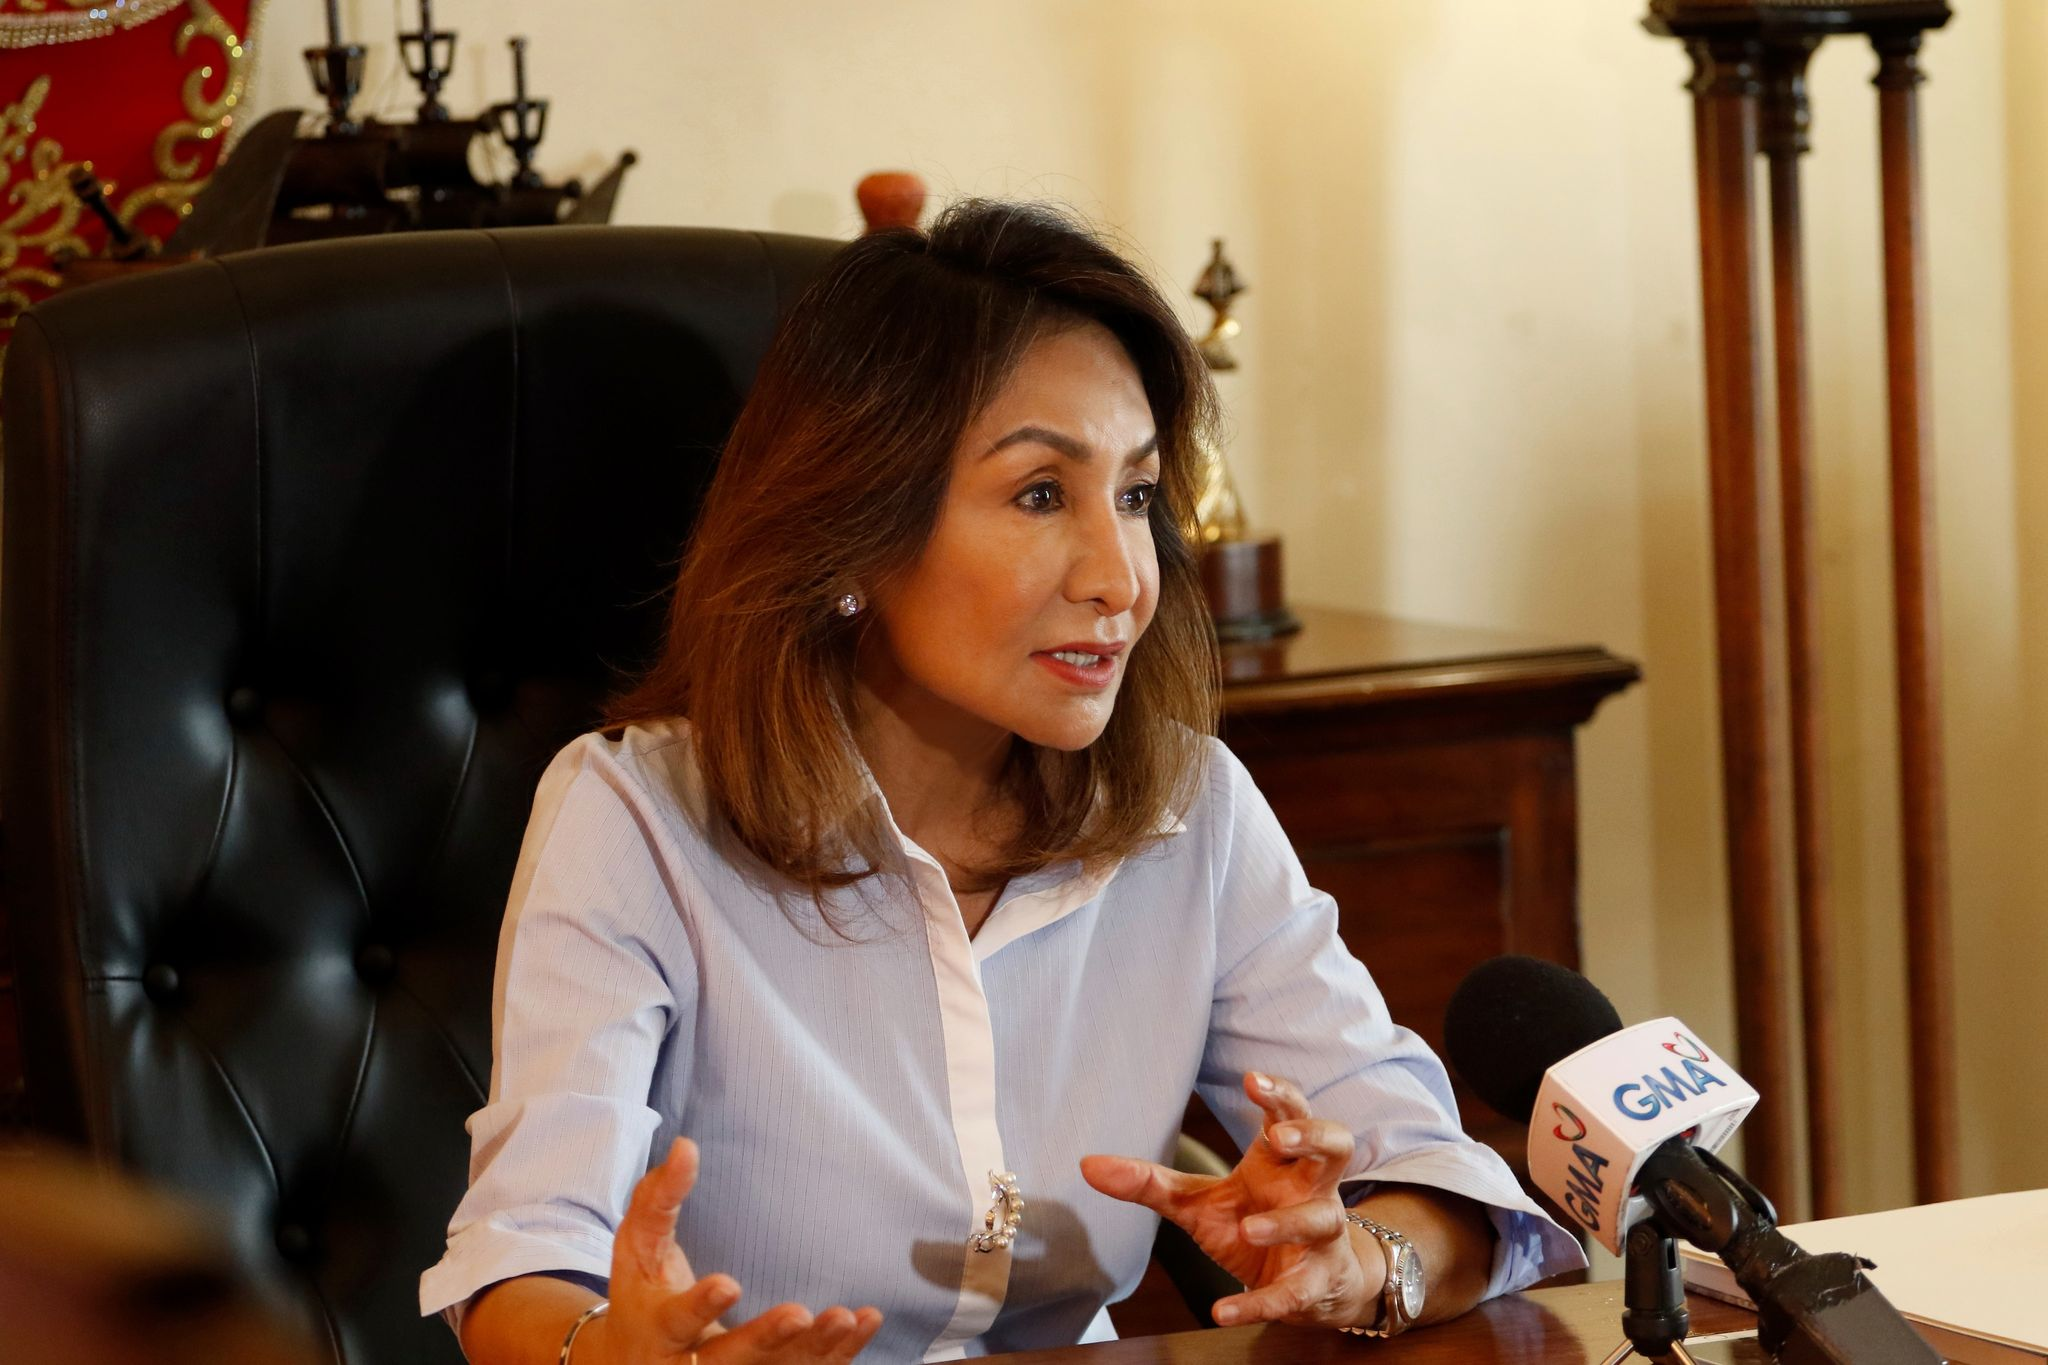 It's not about Manila Bay for us, but the unpermitted domestic sale - Gov clarifies